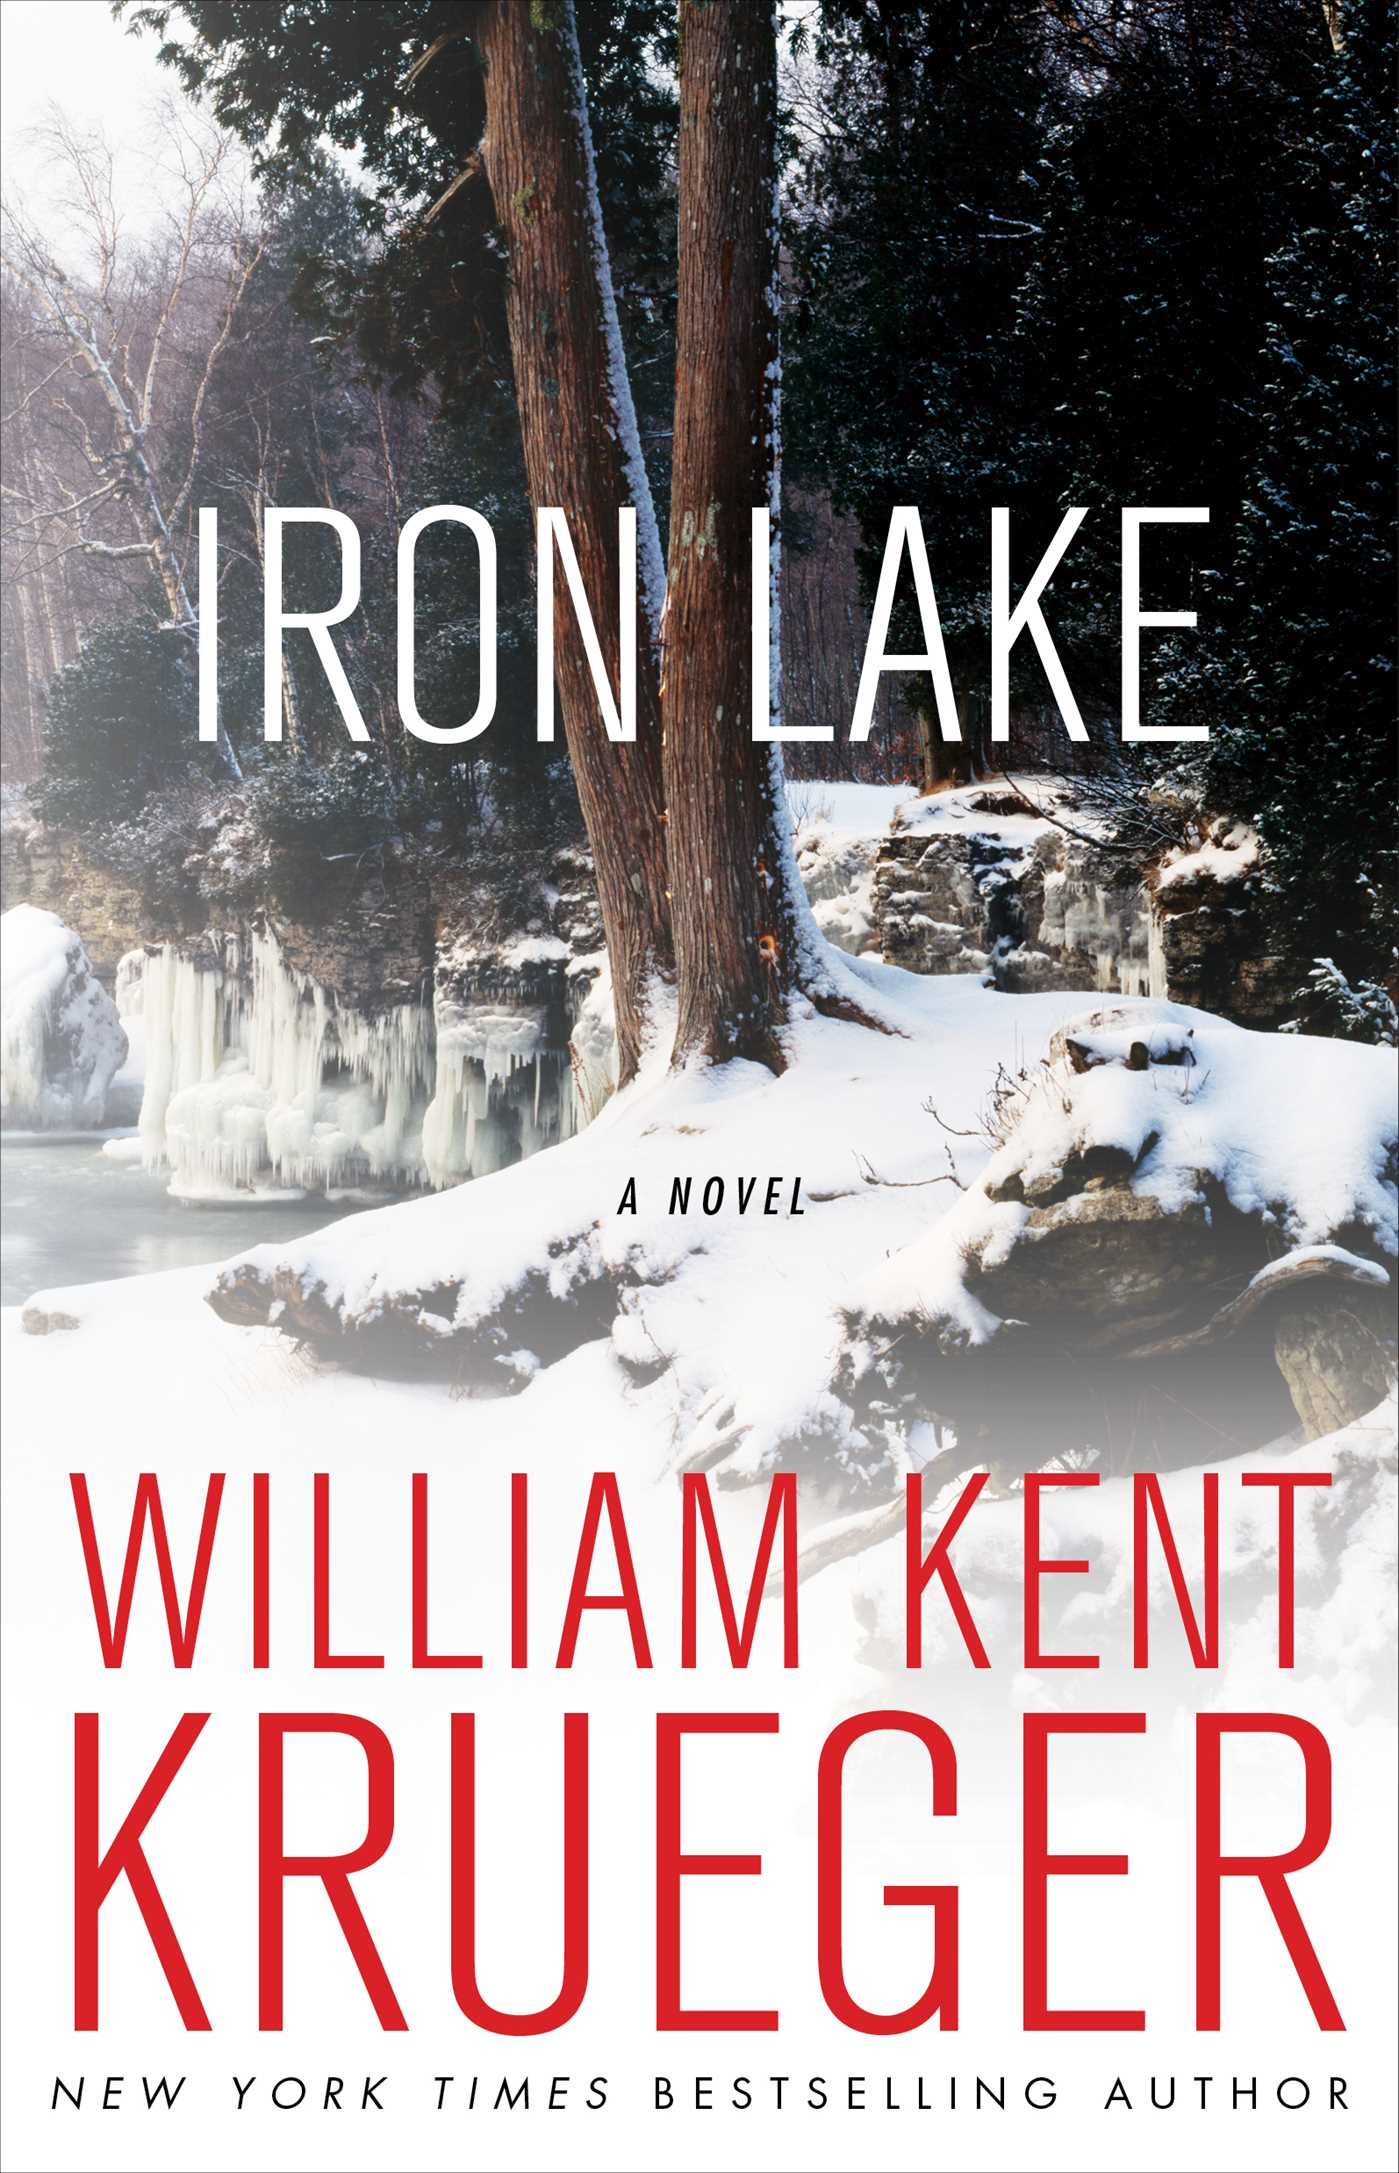 Iron-lake-9781439157282_hr